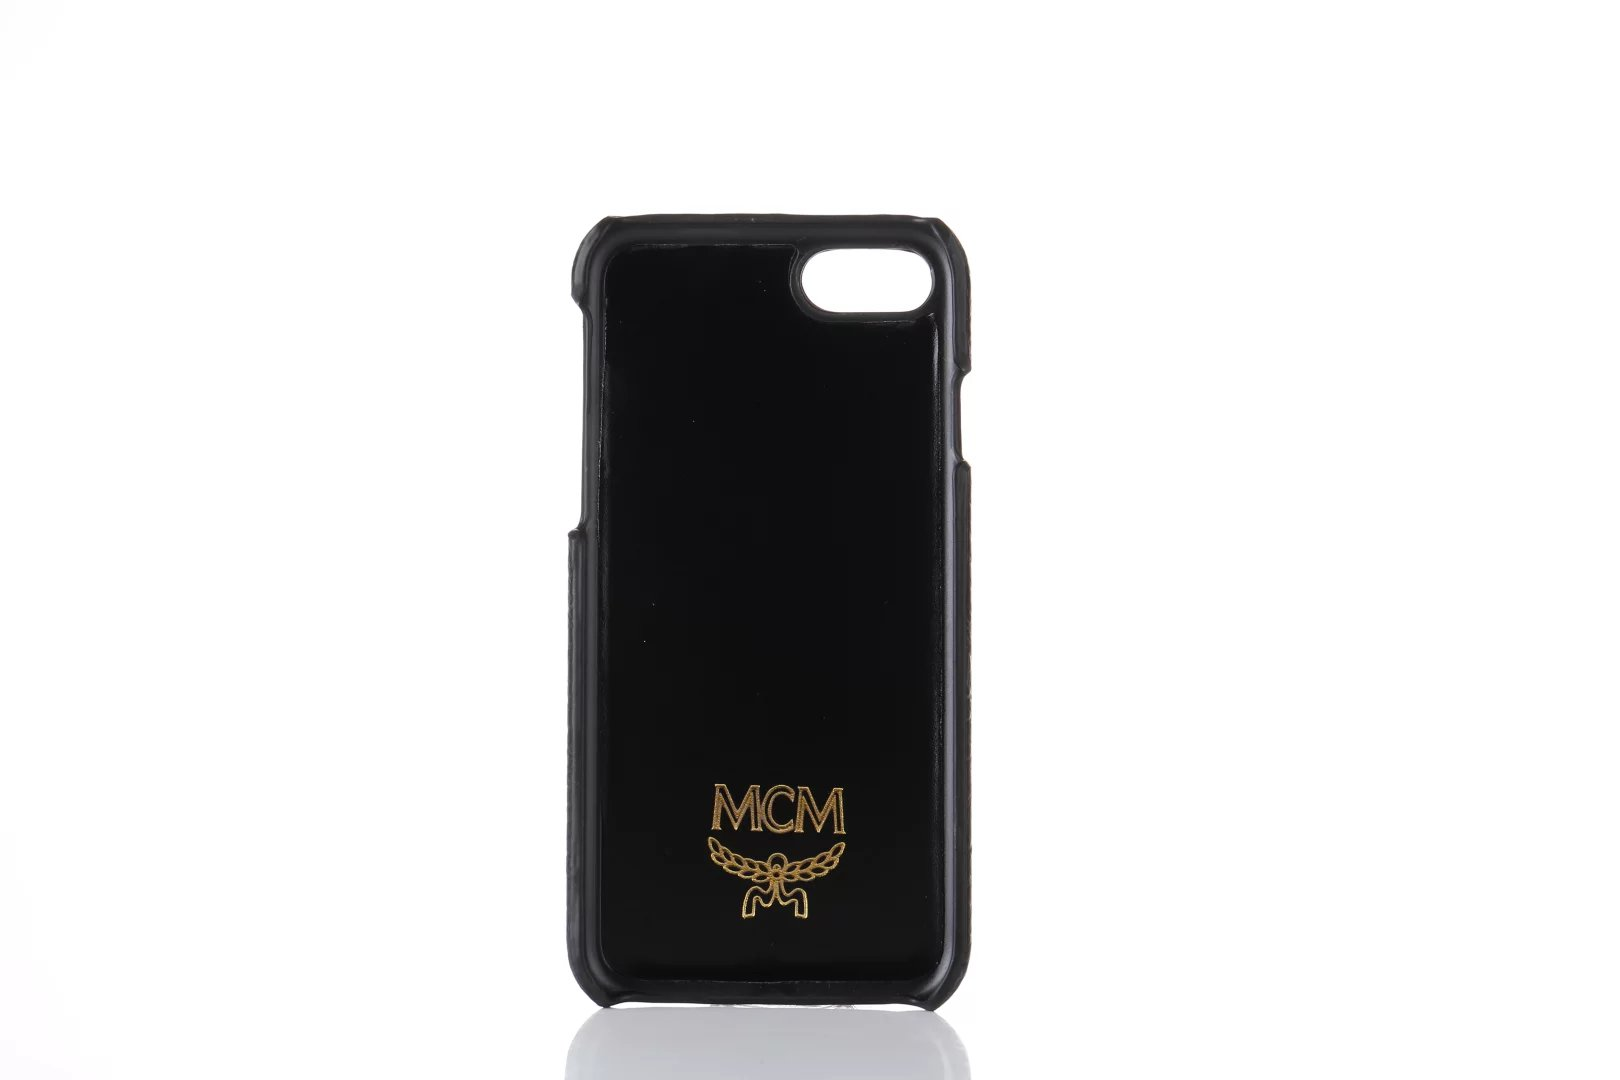 s 6 iphone cases iphone 6 cases and covers fashion iphone6 case iphone 6 price range model iphone case iphone 6 cover case cool iphone 6 s cases new apple 6 phone cover of iphone 6